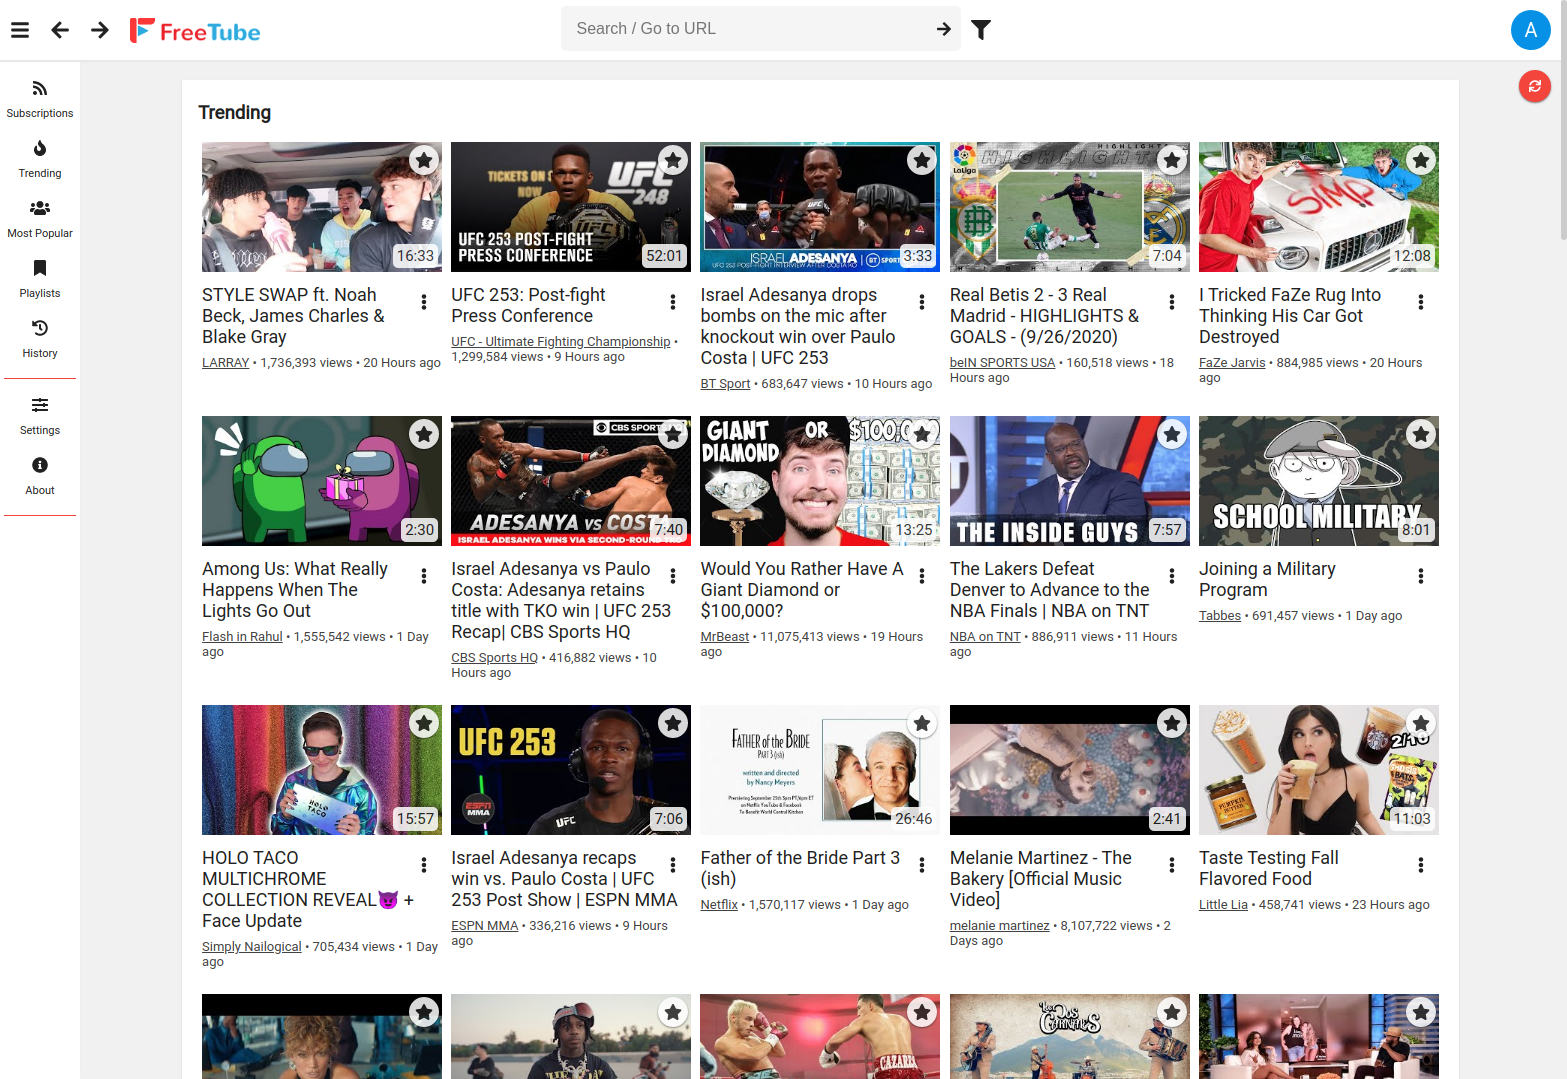 FreeTube's Latest Subscriptions using the grid view